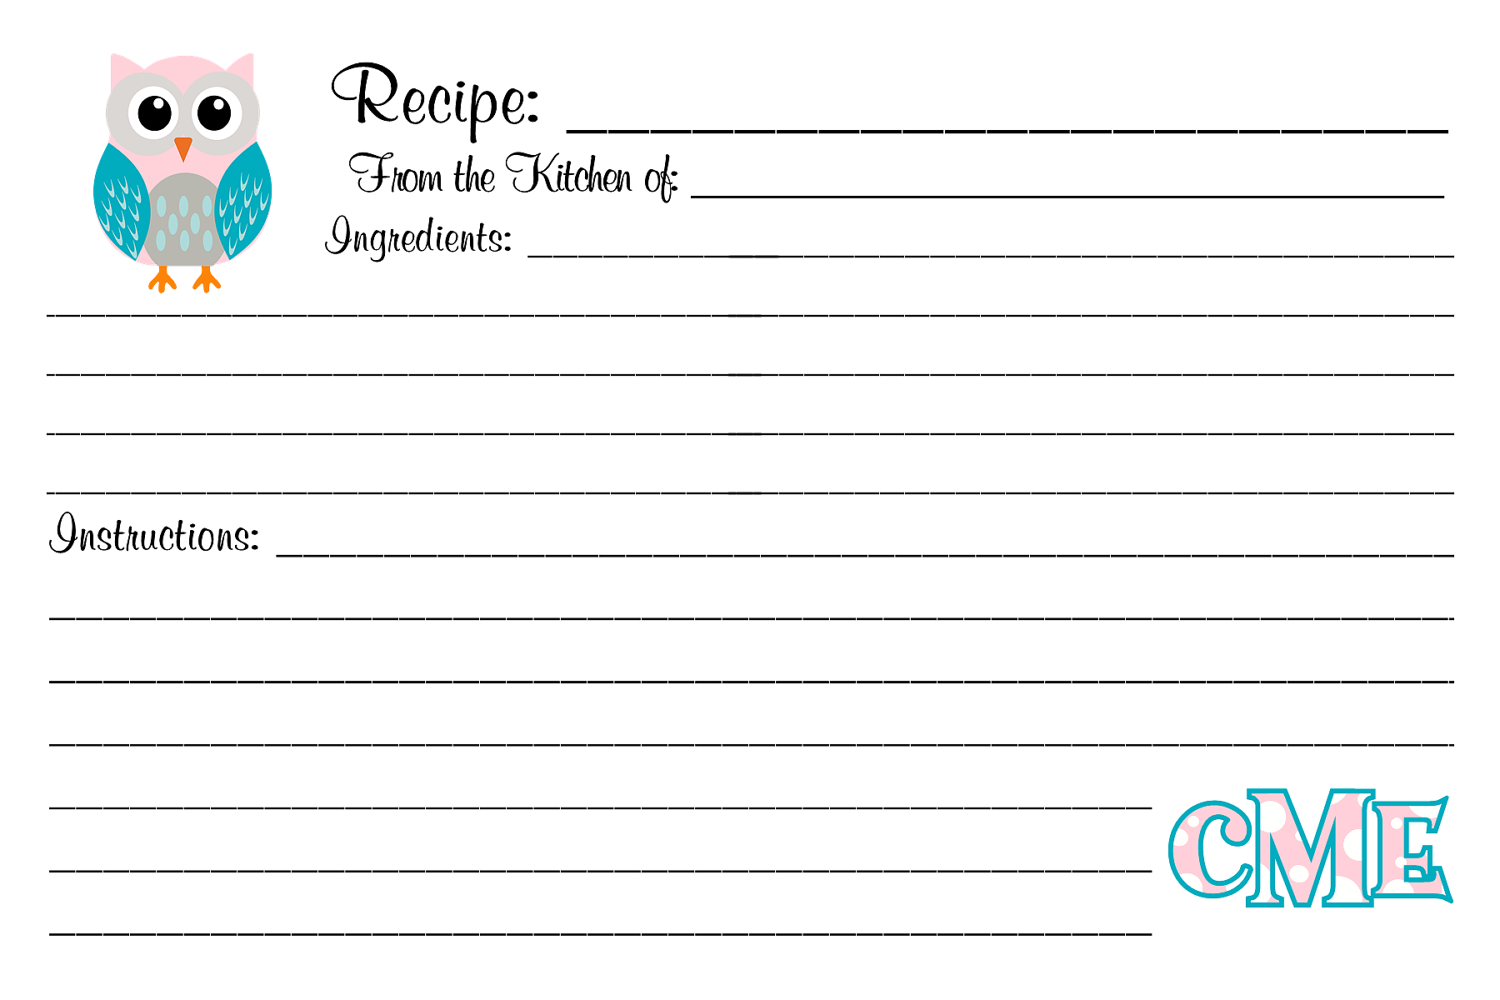 owl recipe cards customized personalized monogrammed 4x6 or